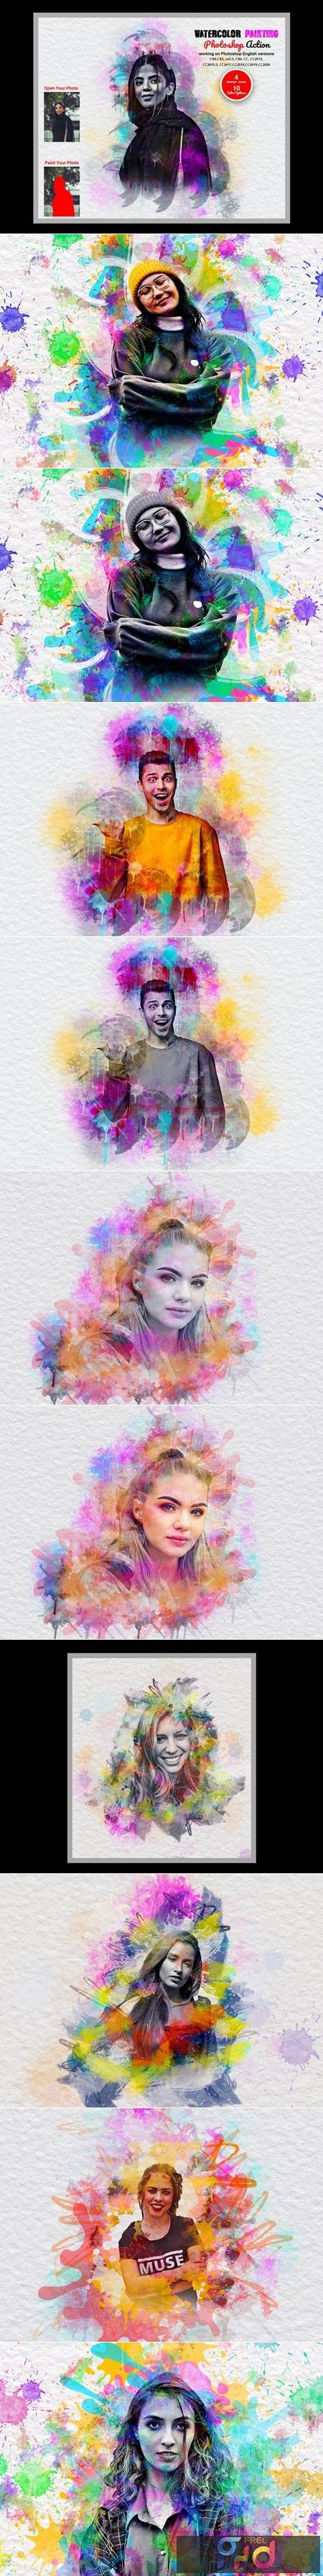 Watercolor Painting Photoshop Action 5641193 1